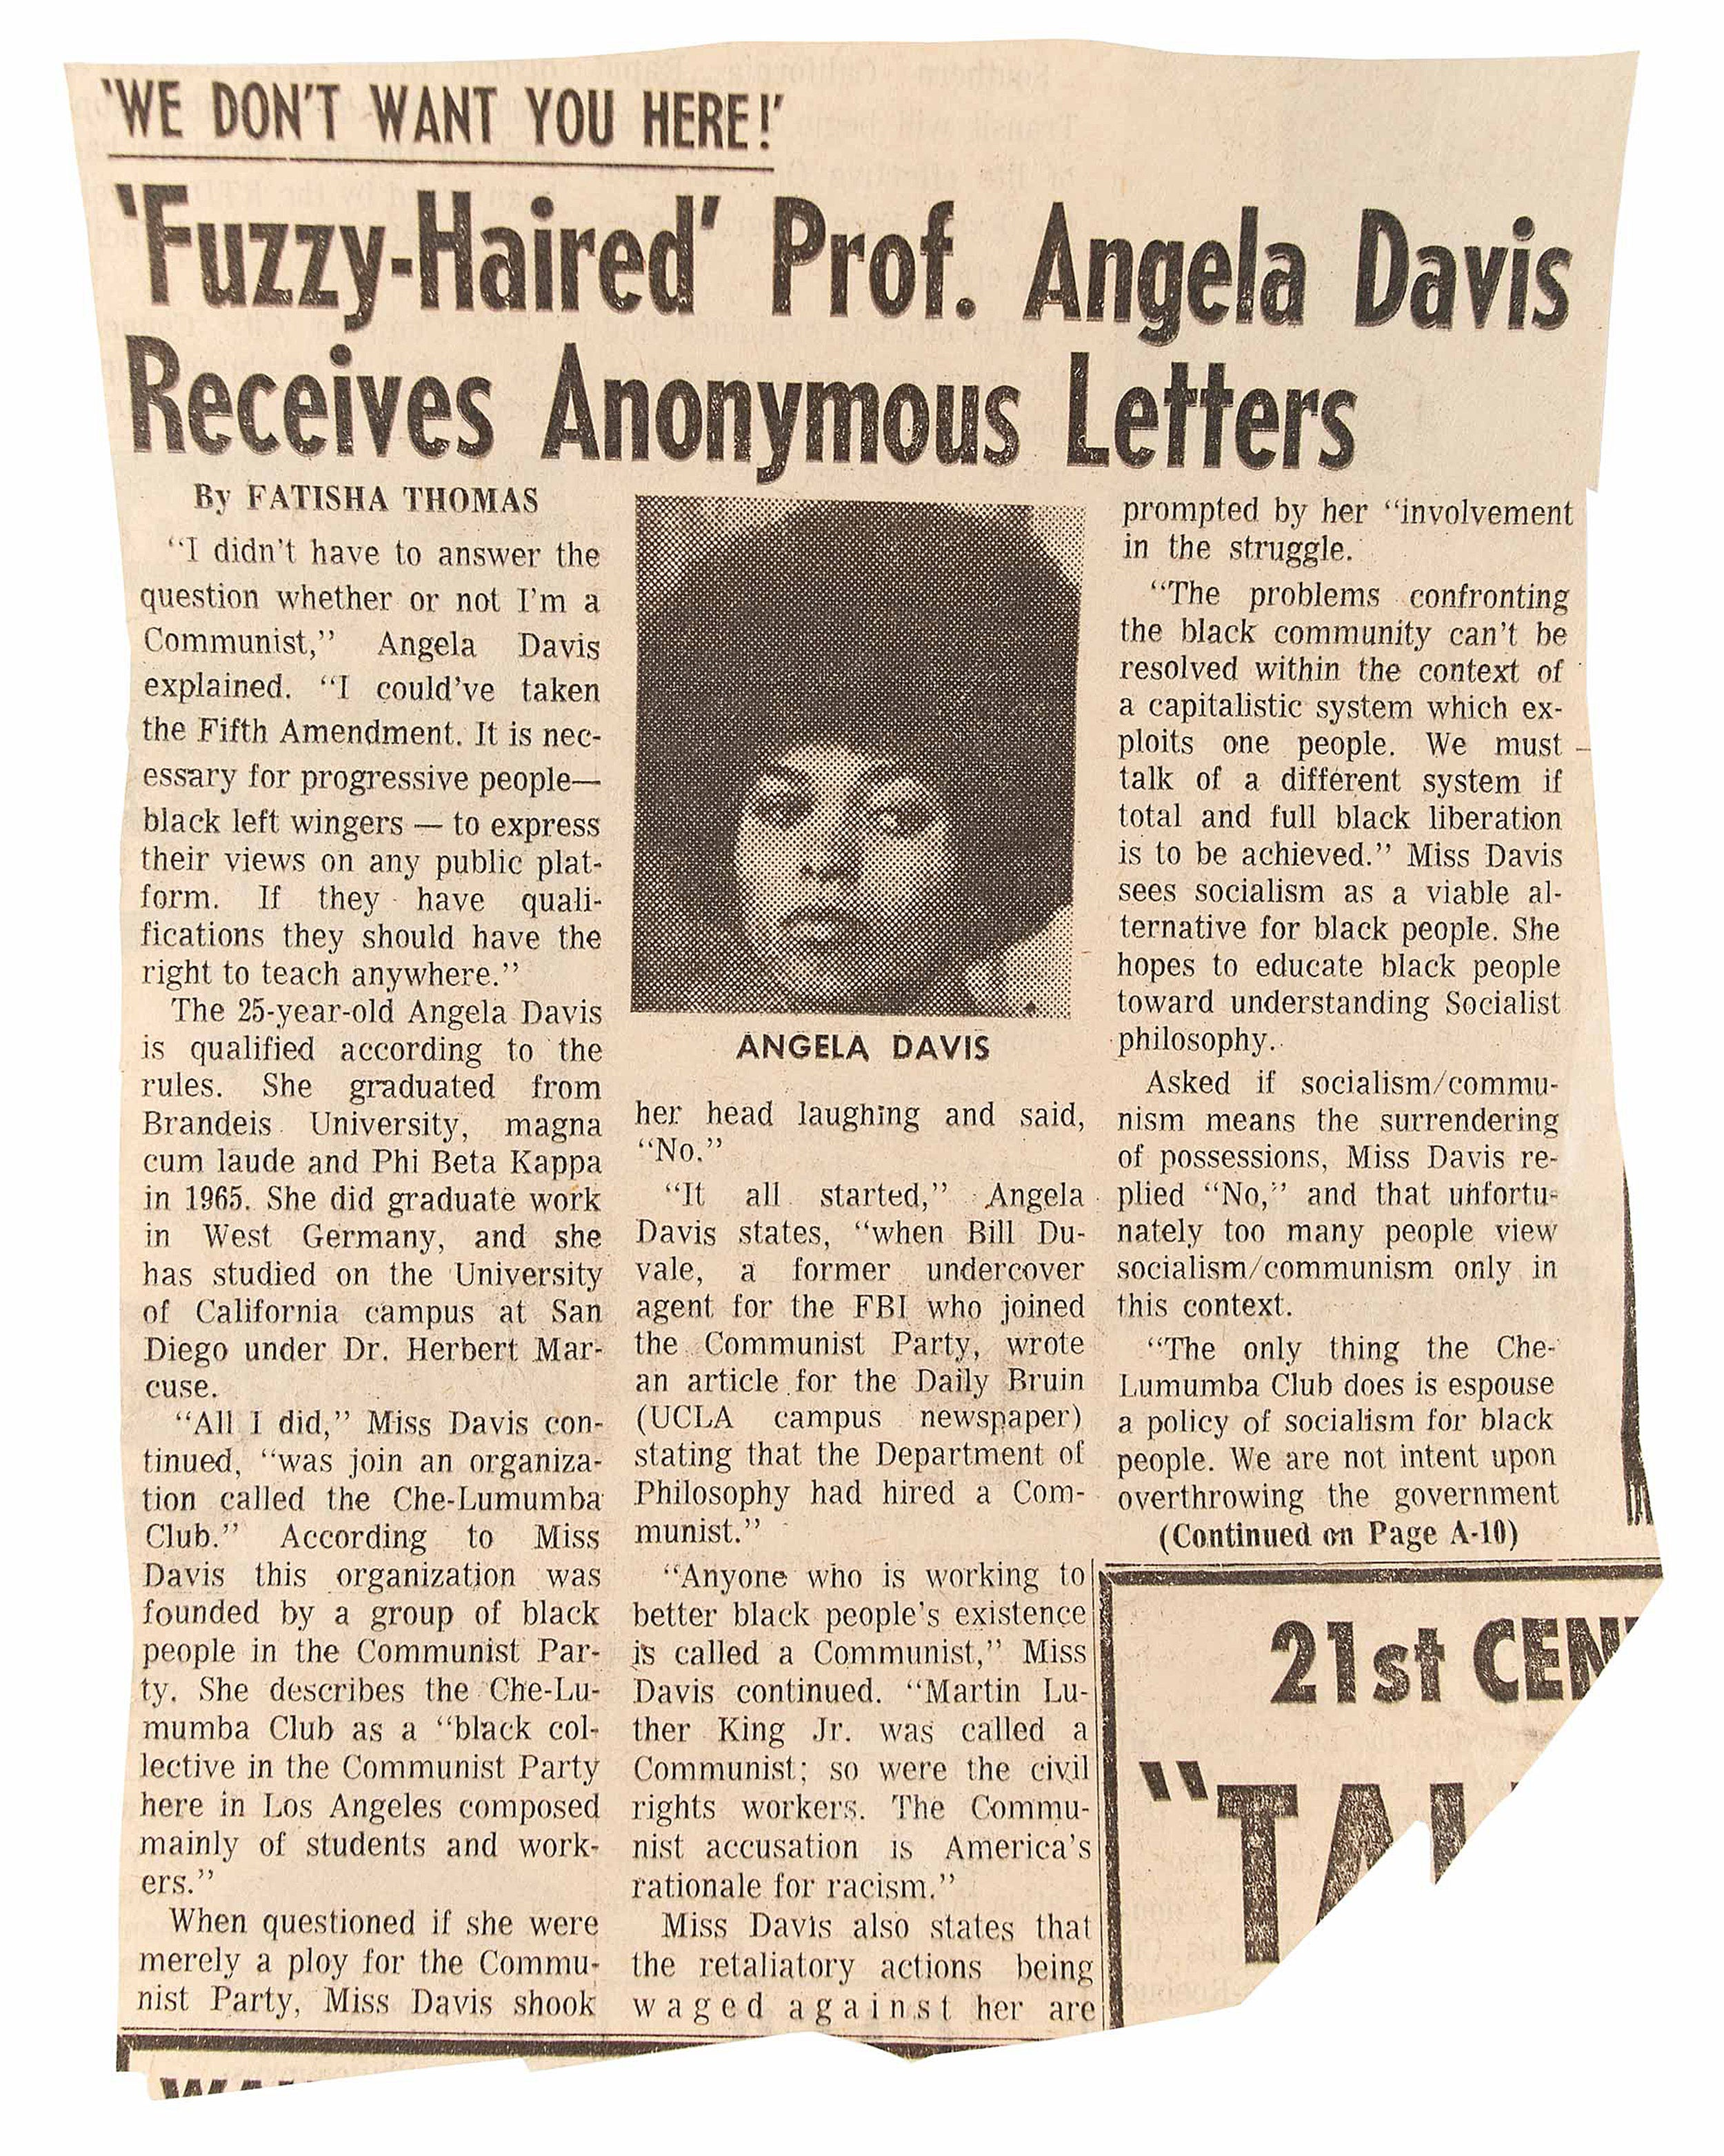 A newspaper clipping of an editorial on Angela Davis.